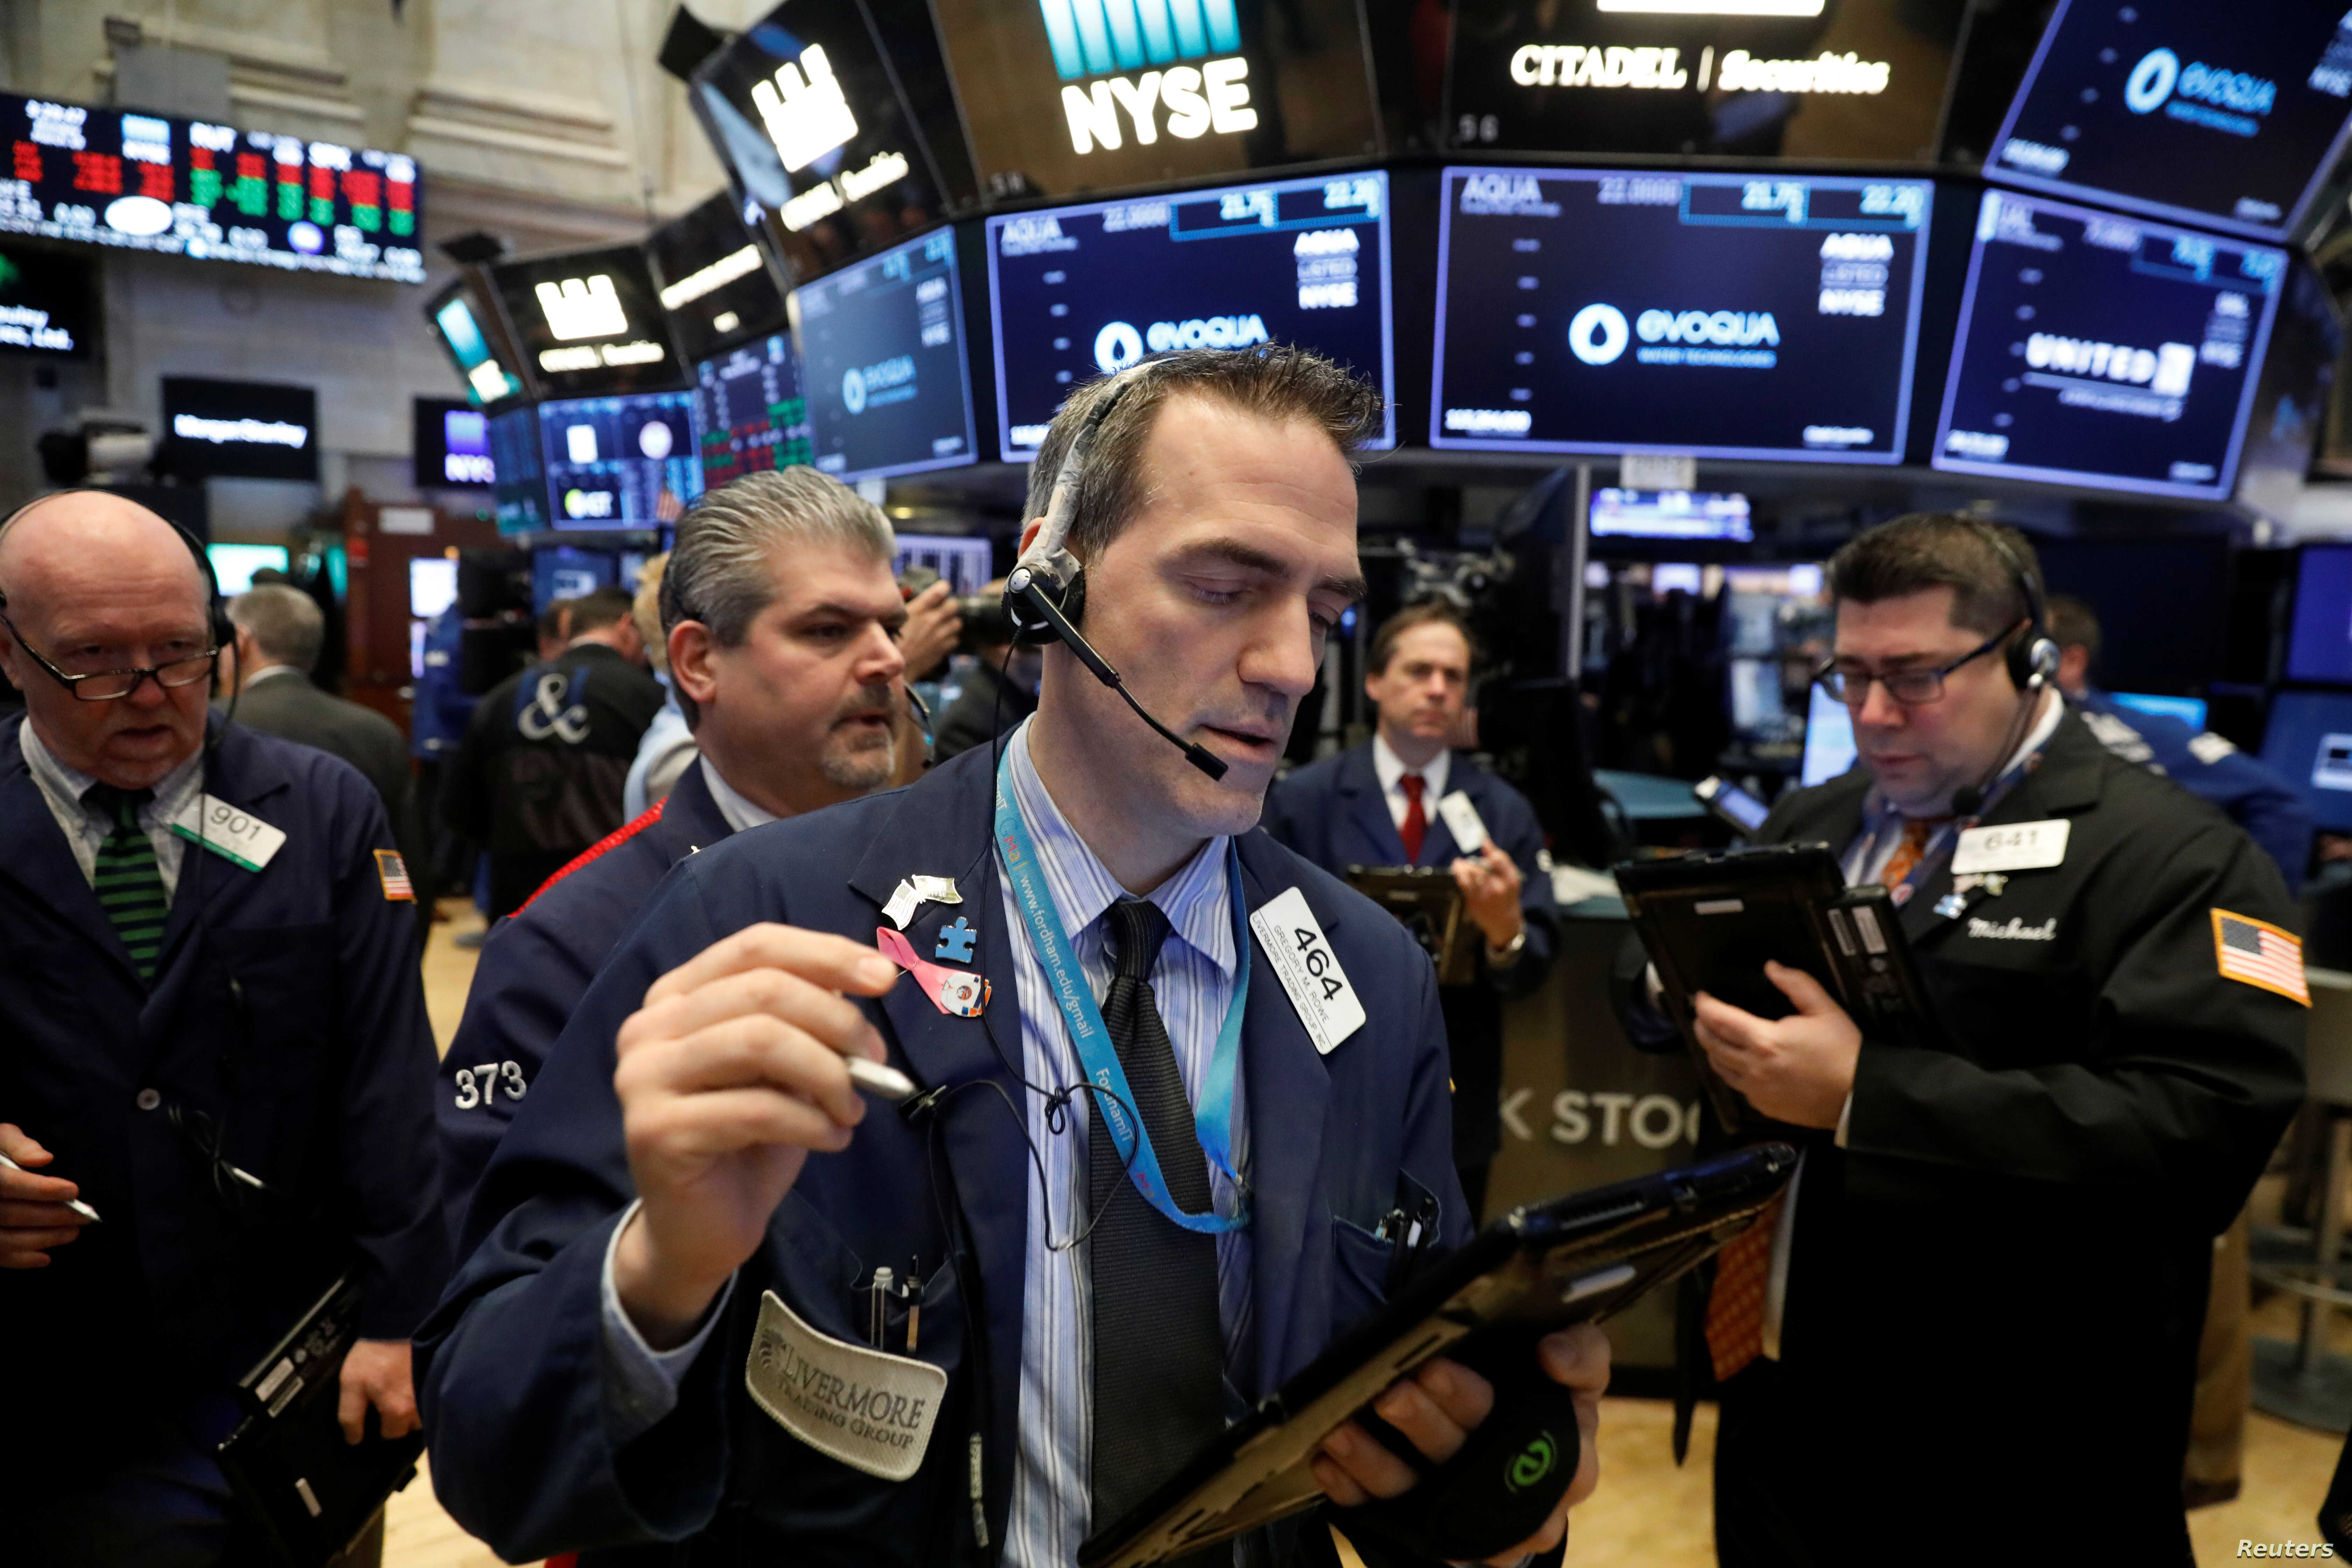 Global Stocks Fall as Concerns Rise Over Trade, Brexit